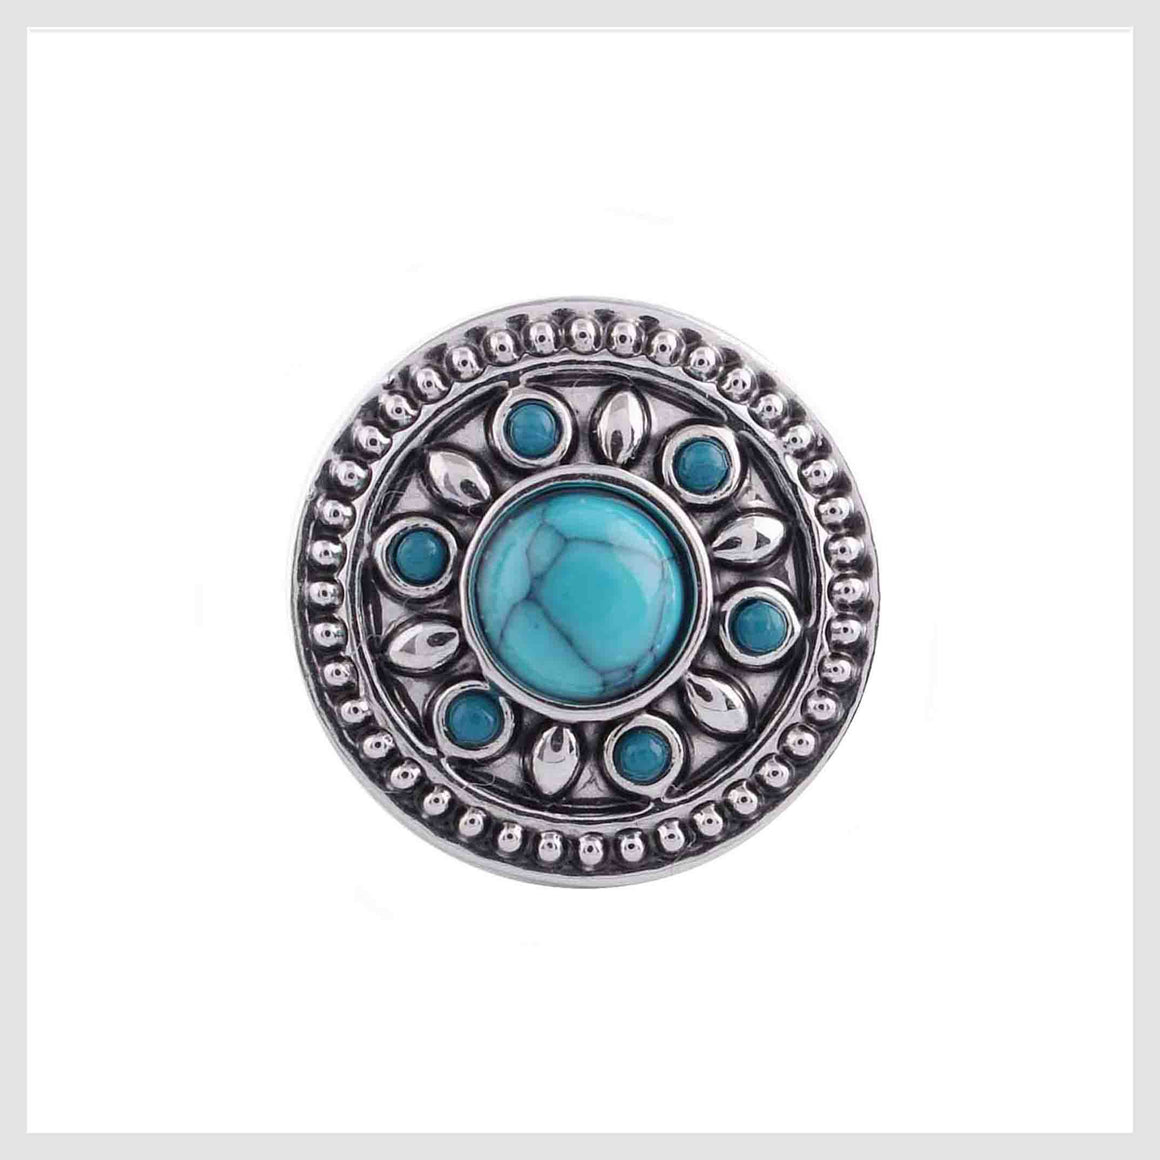 Turquoise Stone Center and Border 12mm Mini - Beads and Dangles